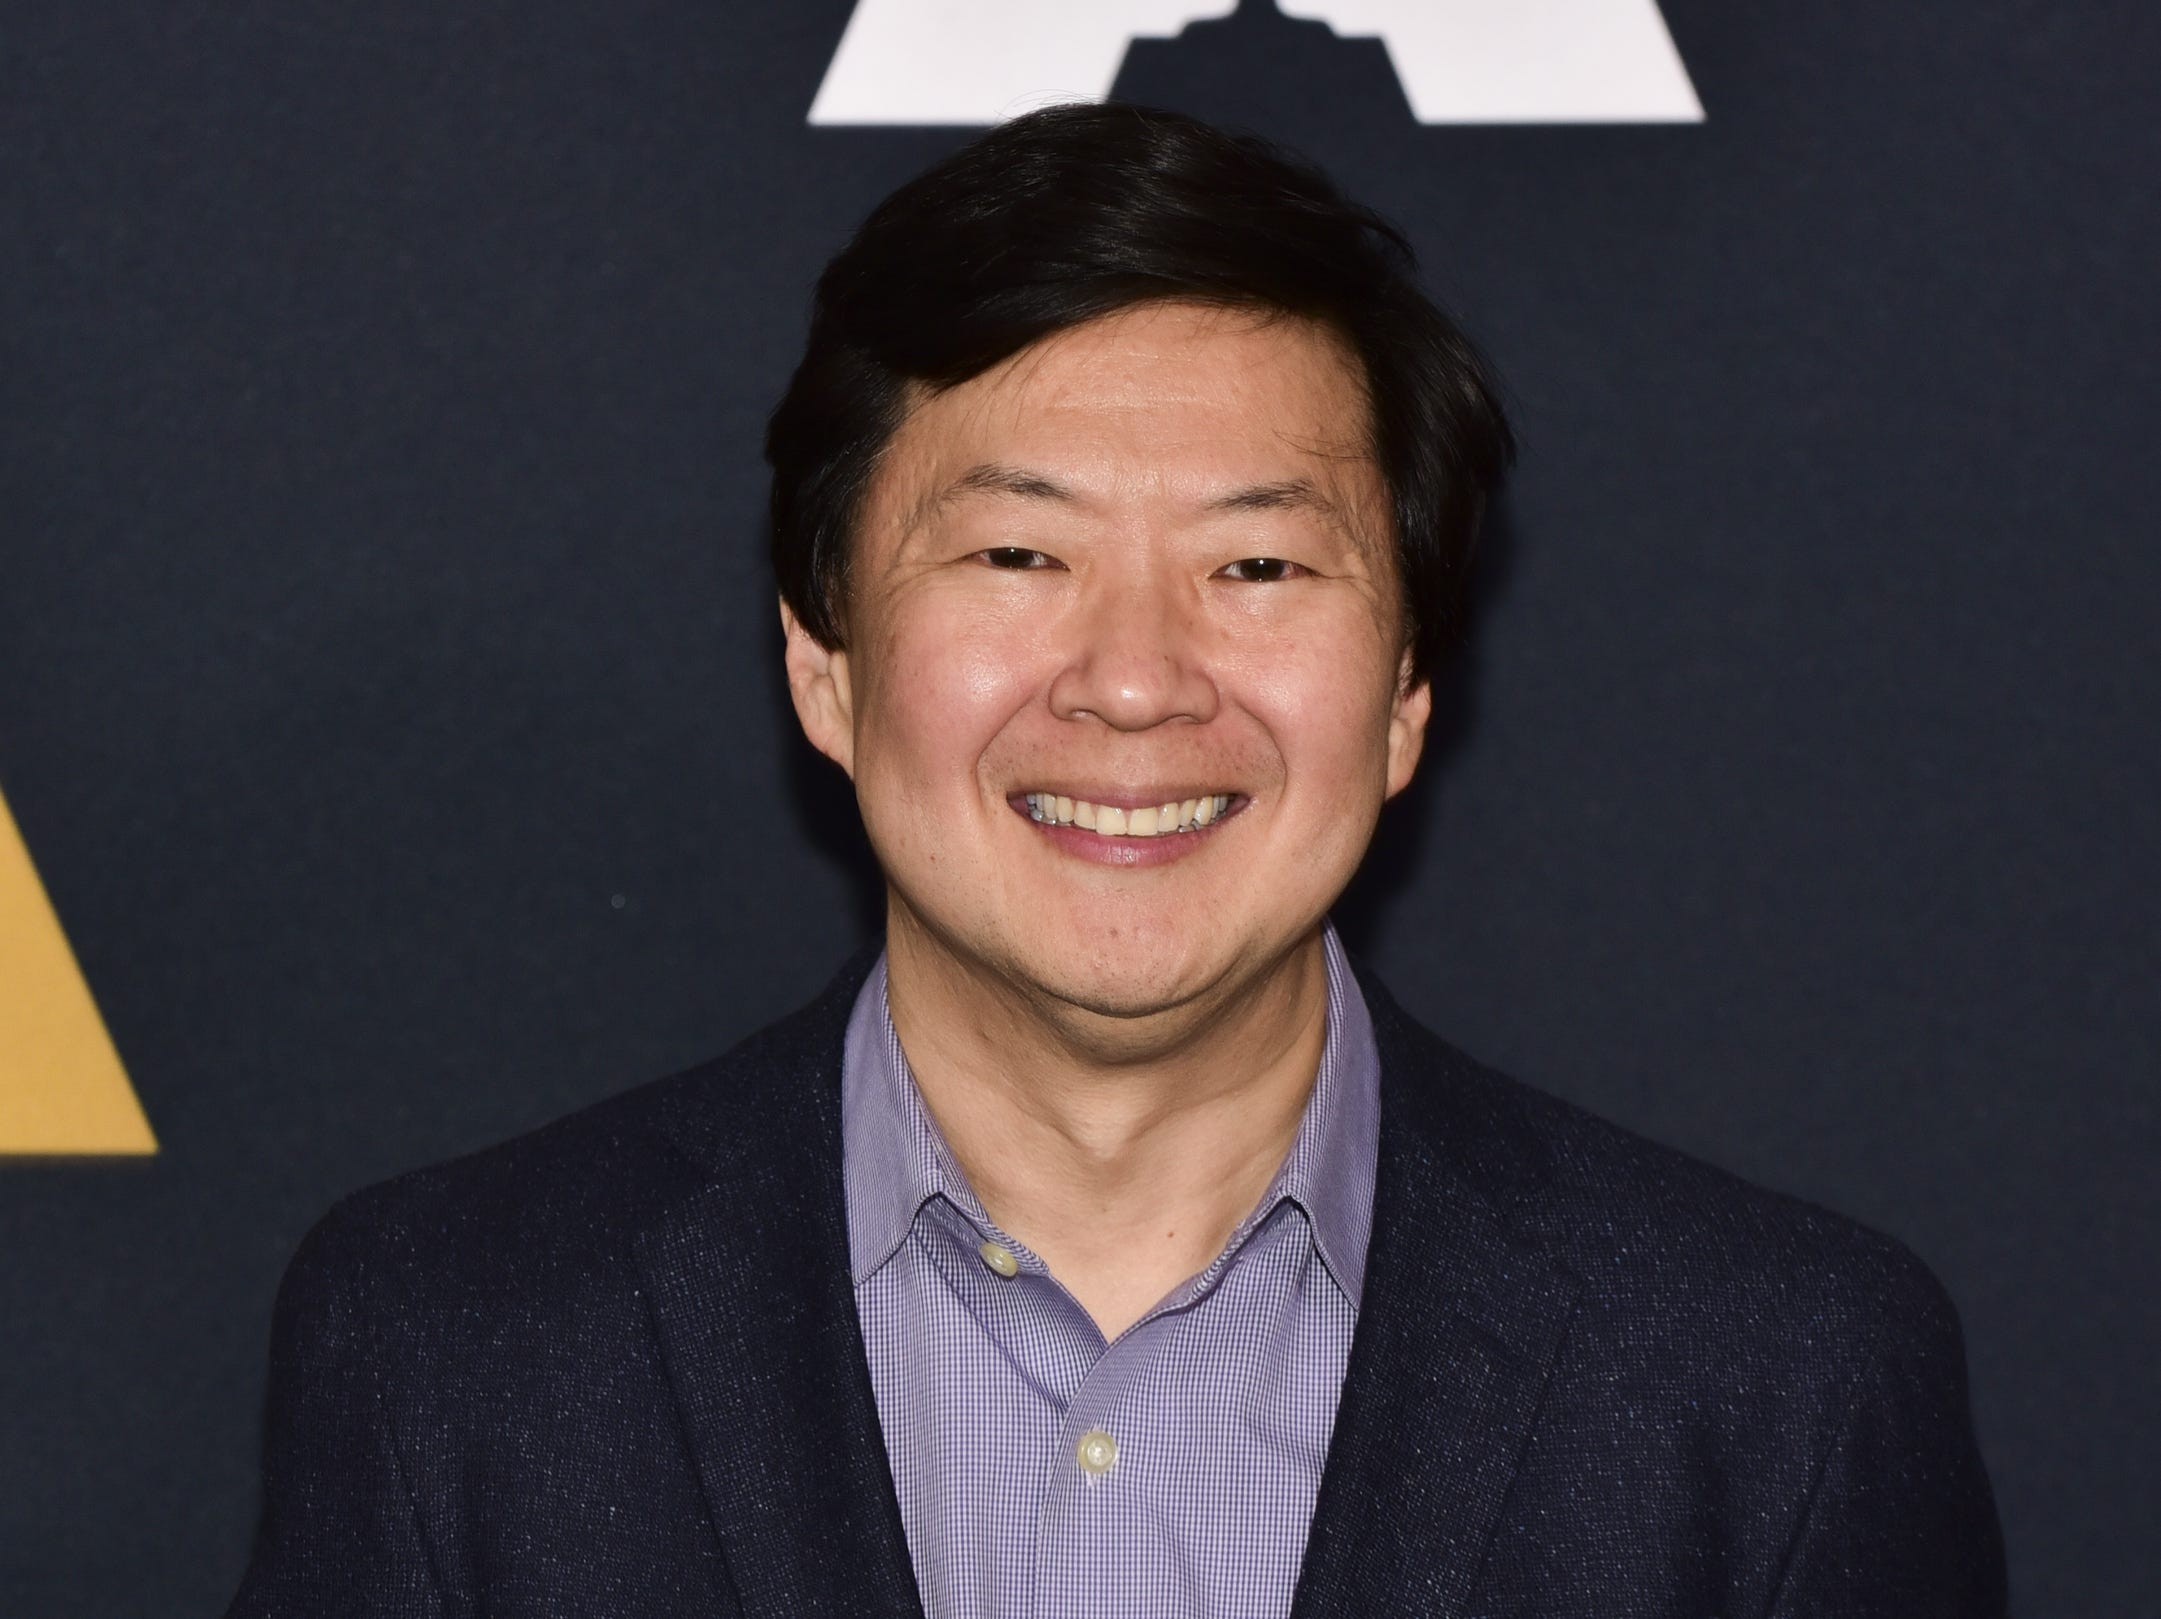 BEVERLY HILLS, CALIFORNIA - NOVEMBER 08: Actor Ken Jeong attends the Academy Nicholl Fellowships in Screenwriting Awards and Live Read at Samuel Goldwyn Theater on November 08, 2018 in Beverly Hills, California. (Photo by Rodin Eckenroth/Getty Images) ORG XMIT: 775231334 ORIG FILE ID: 1065276674